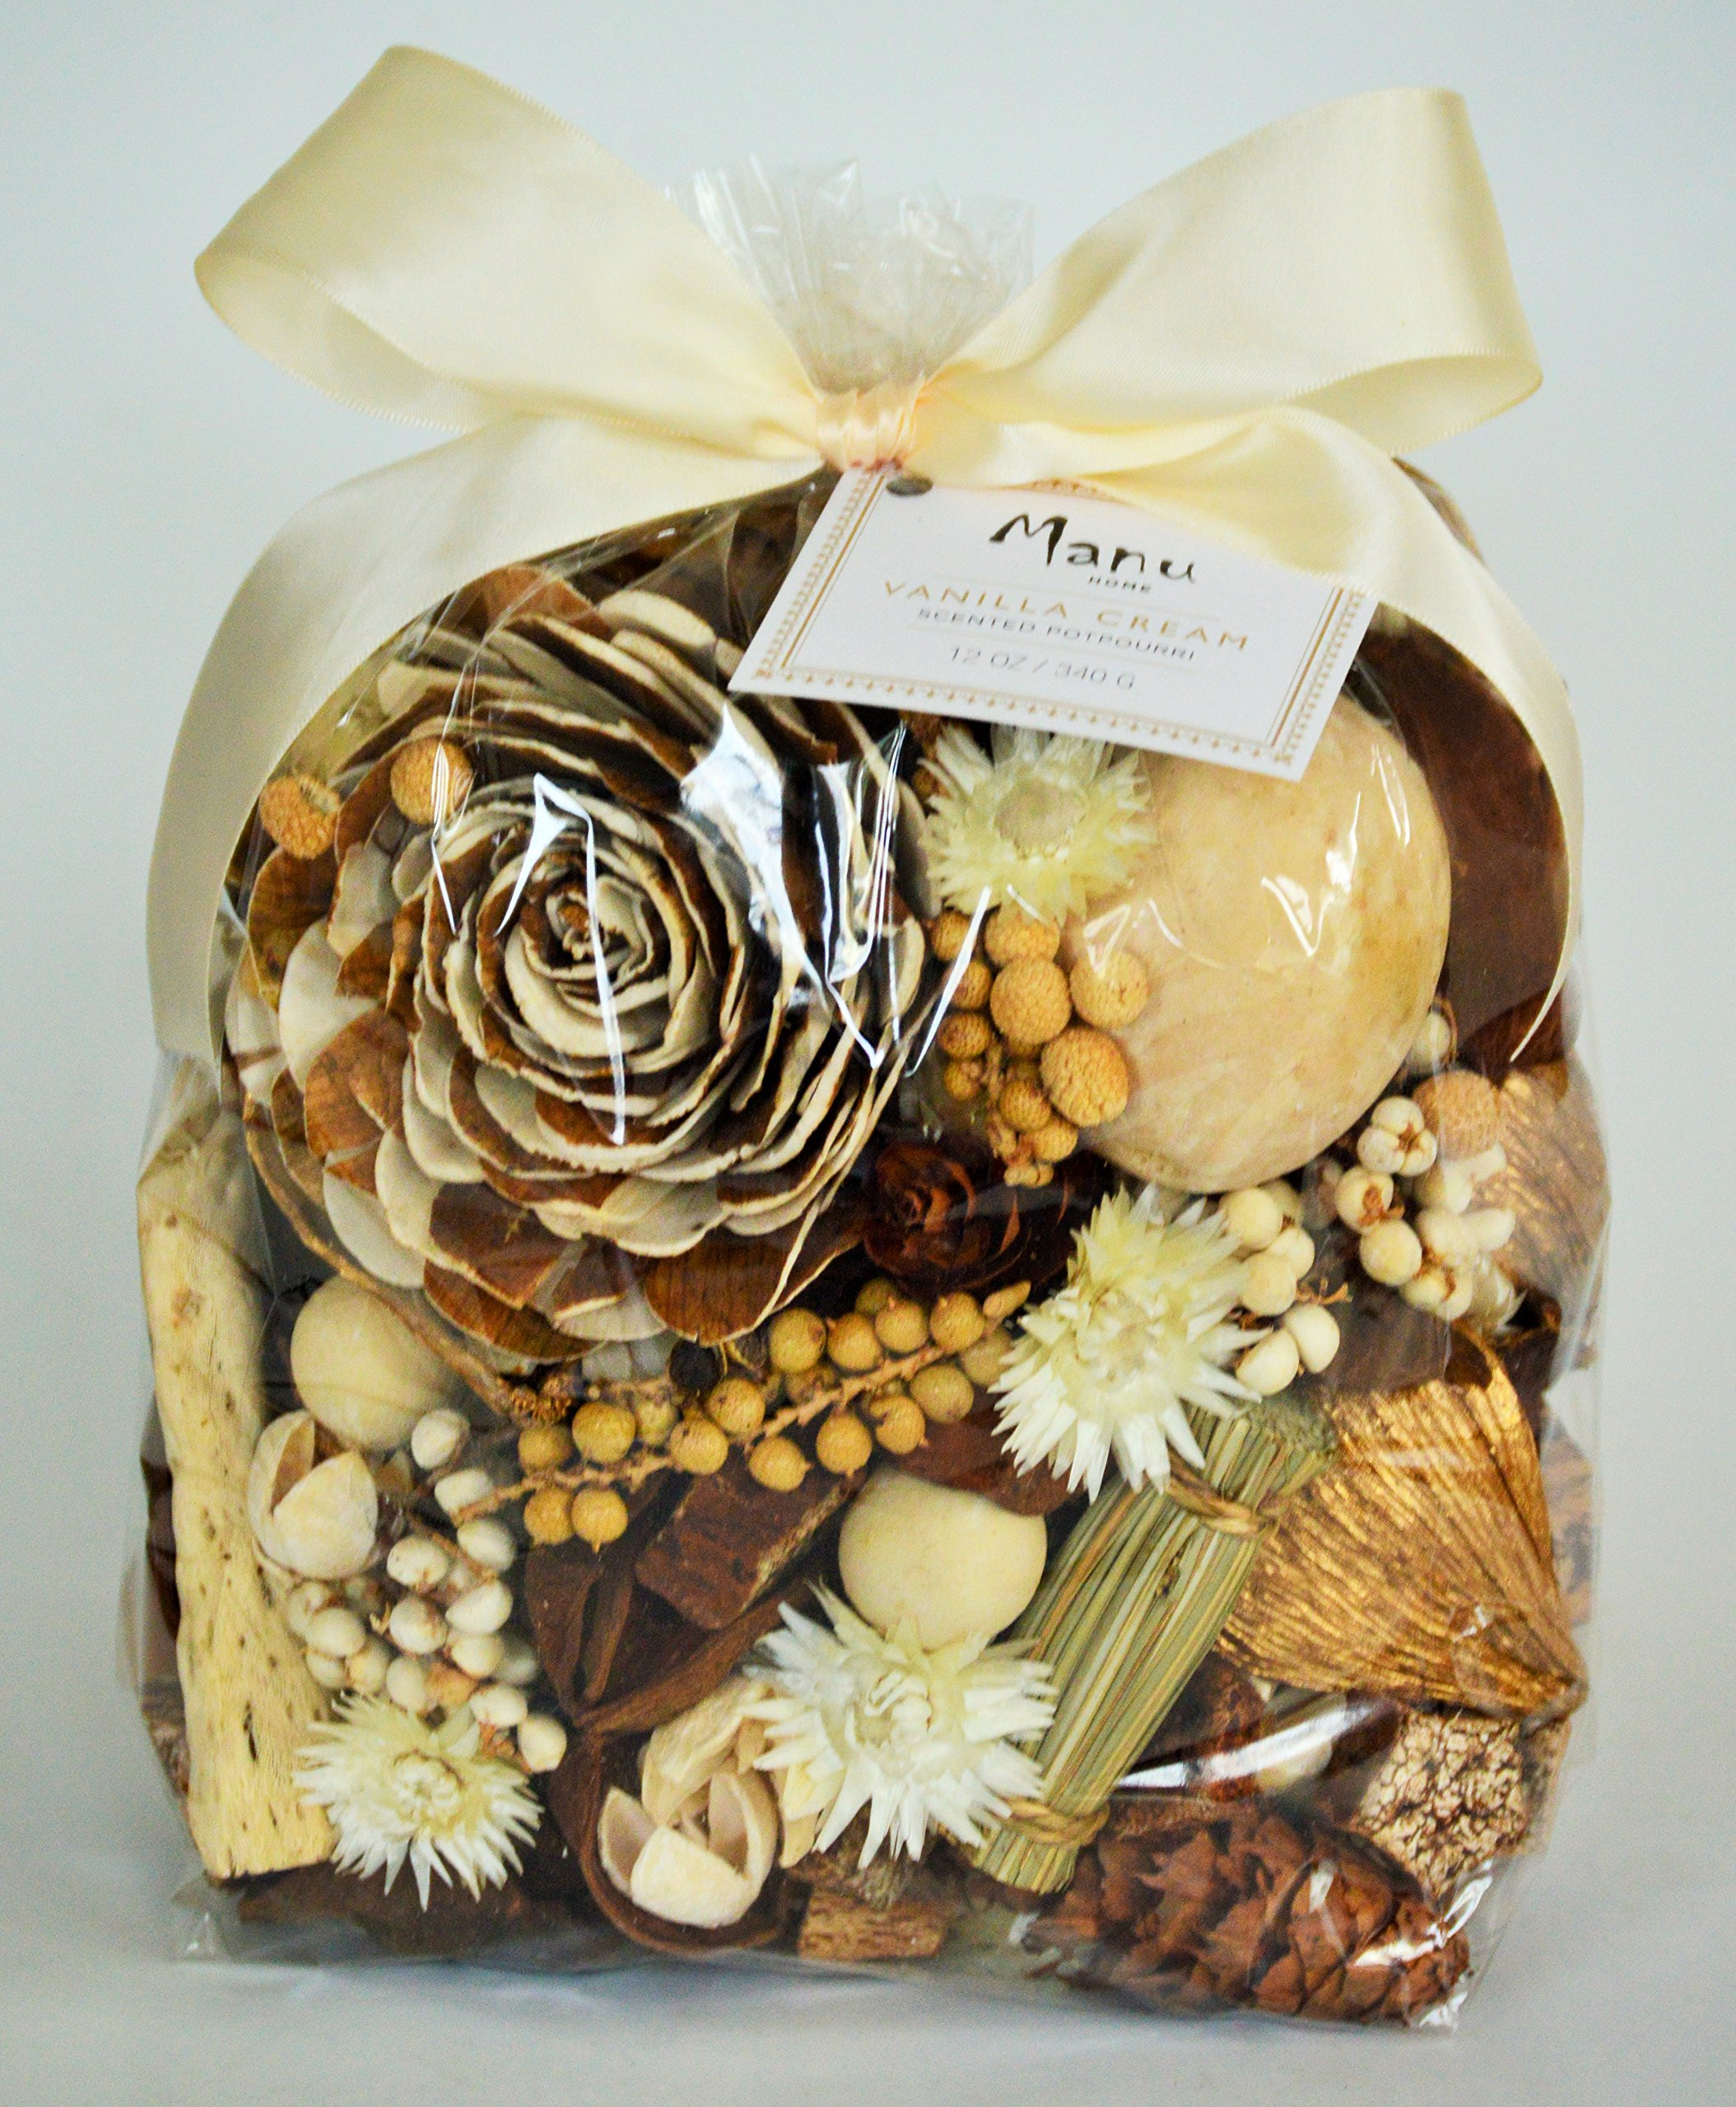 Manu Home Large Vanilla Potpourri bag~ The delectable scent of authentic vanilla bean blended with warm woods and amber-all in a colorful mix that fills a room with fragrance ~Made in the USA! by Manu Home